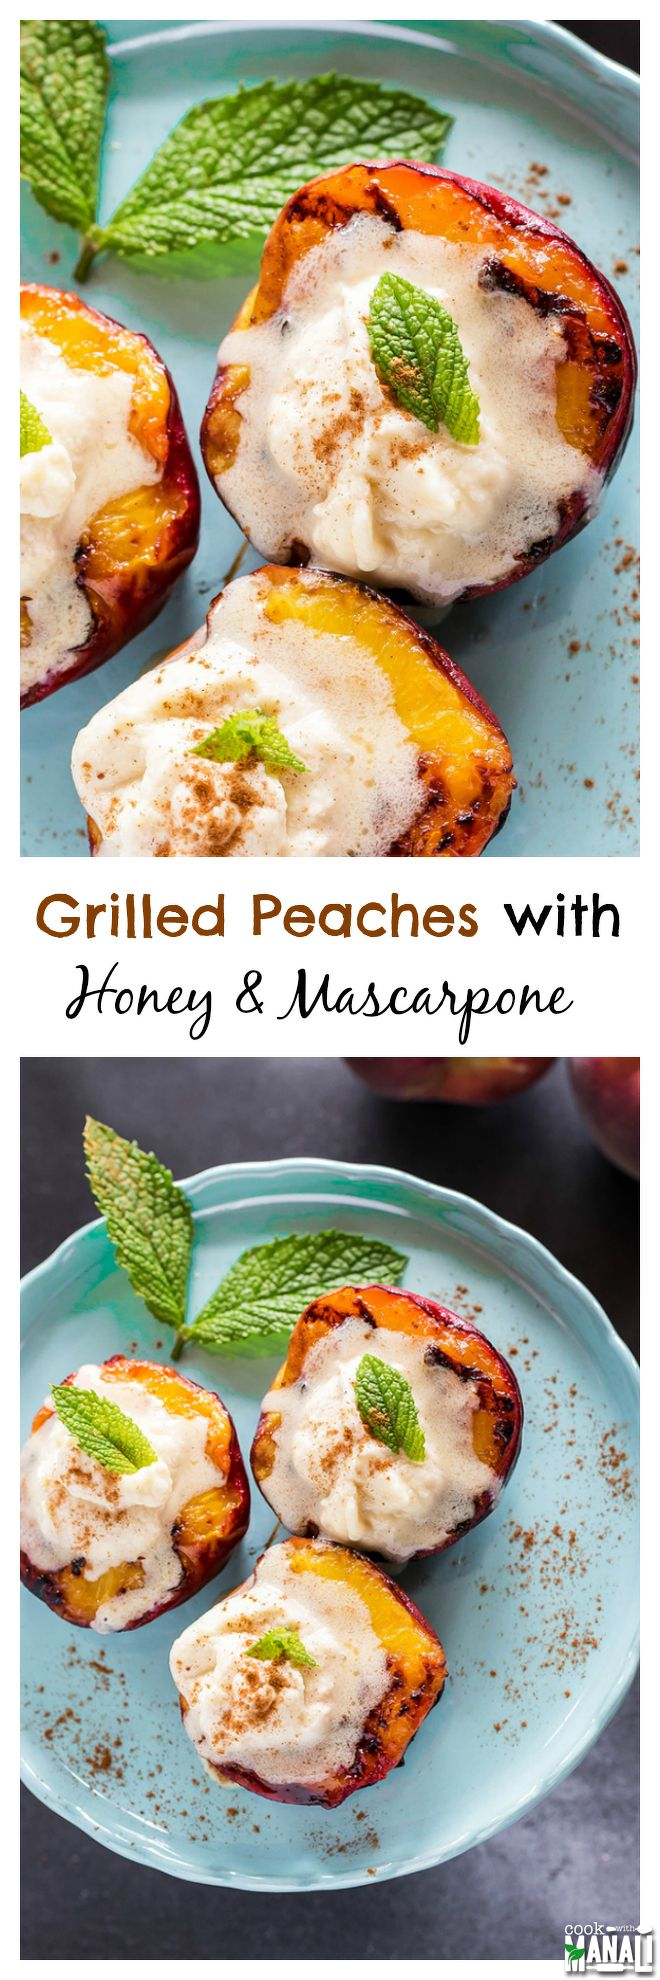 Grilled peaches with mascarpone and honey, a simple yet delicious summer dessert! Find the recipe on www.cookwithmanali.com